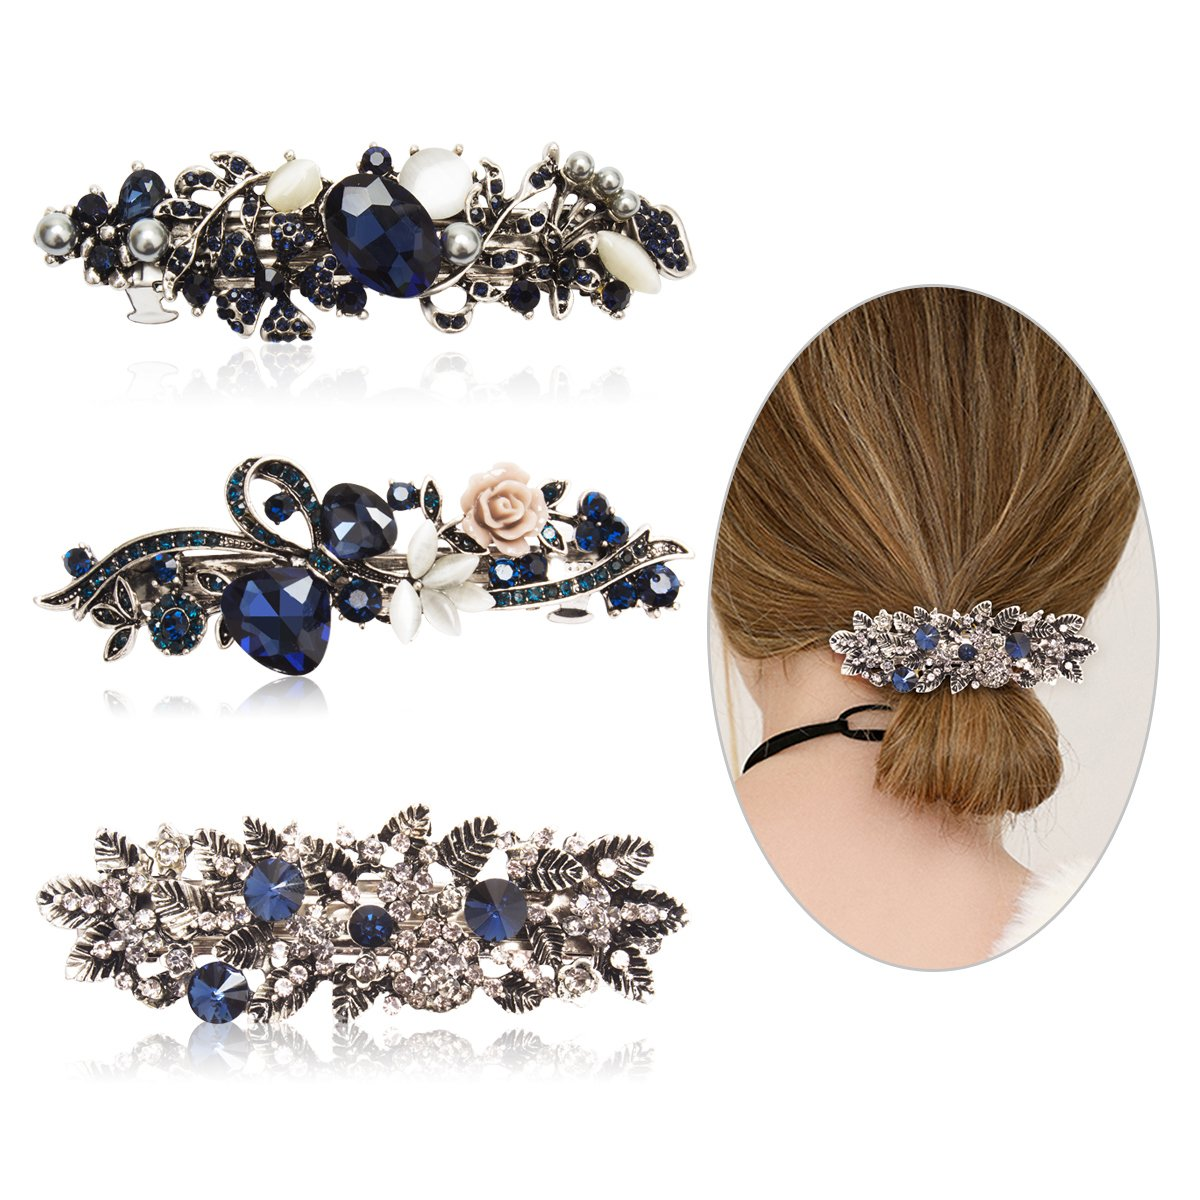 Cubaco 3 Pack Crystal Rhinestones Barrettes French Hair Clip French Clip Flower Design Hair Clips Barrette Bridal Wedding Formal Event Jewelry Accessory for Women Girls